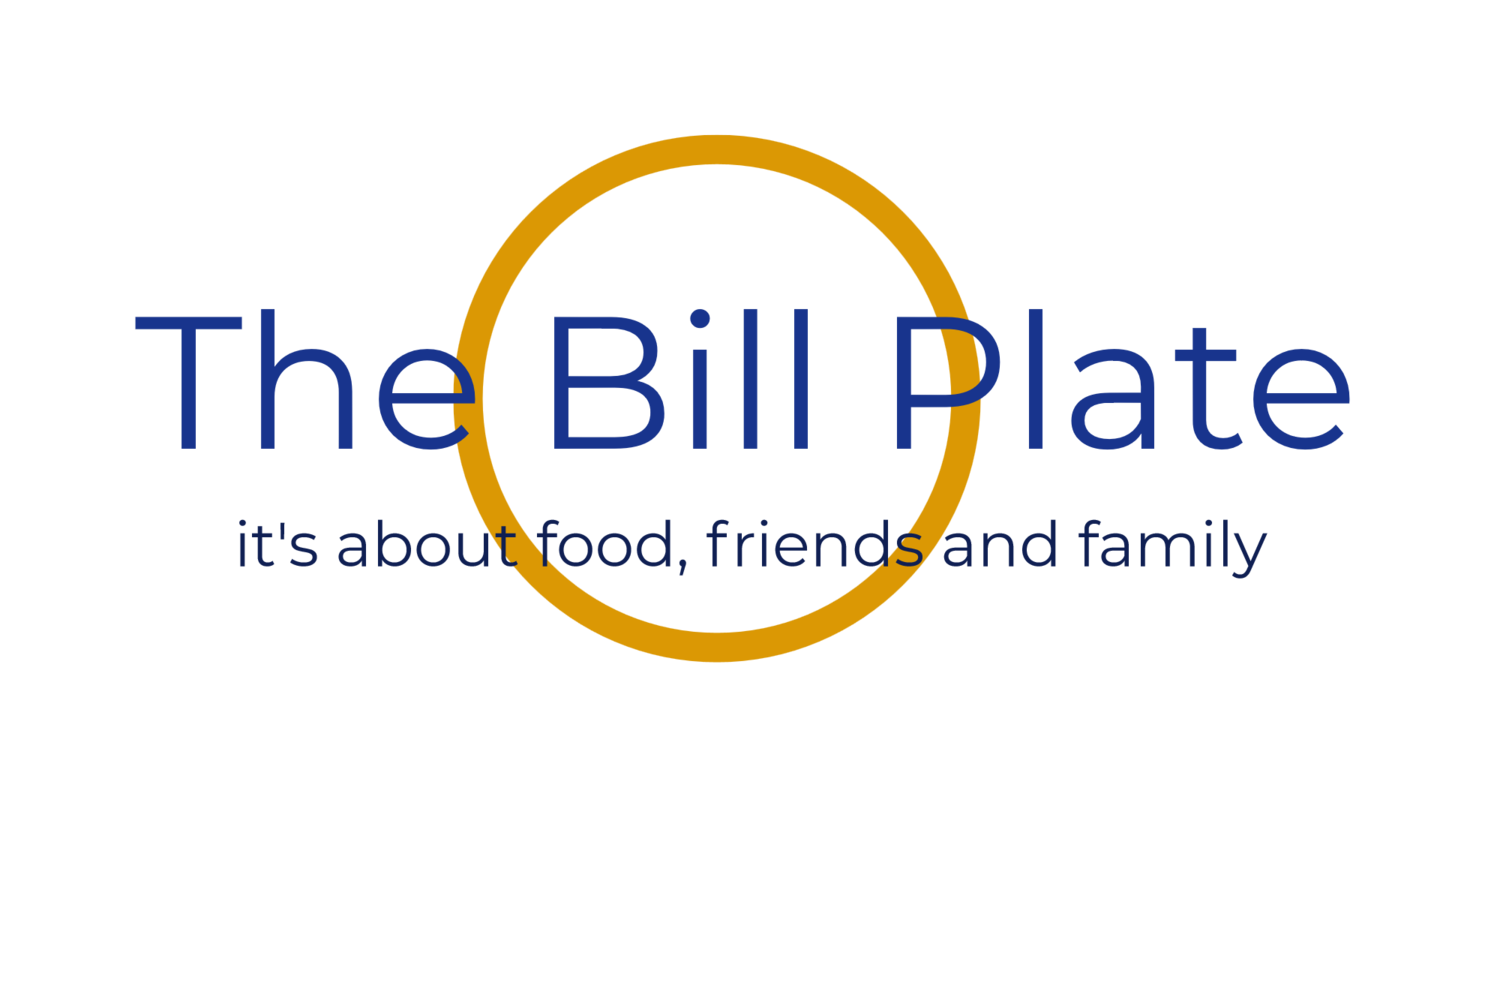 The Bill Plate